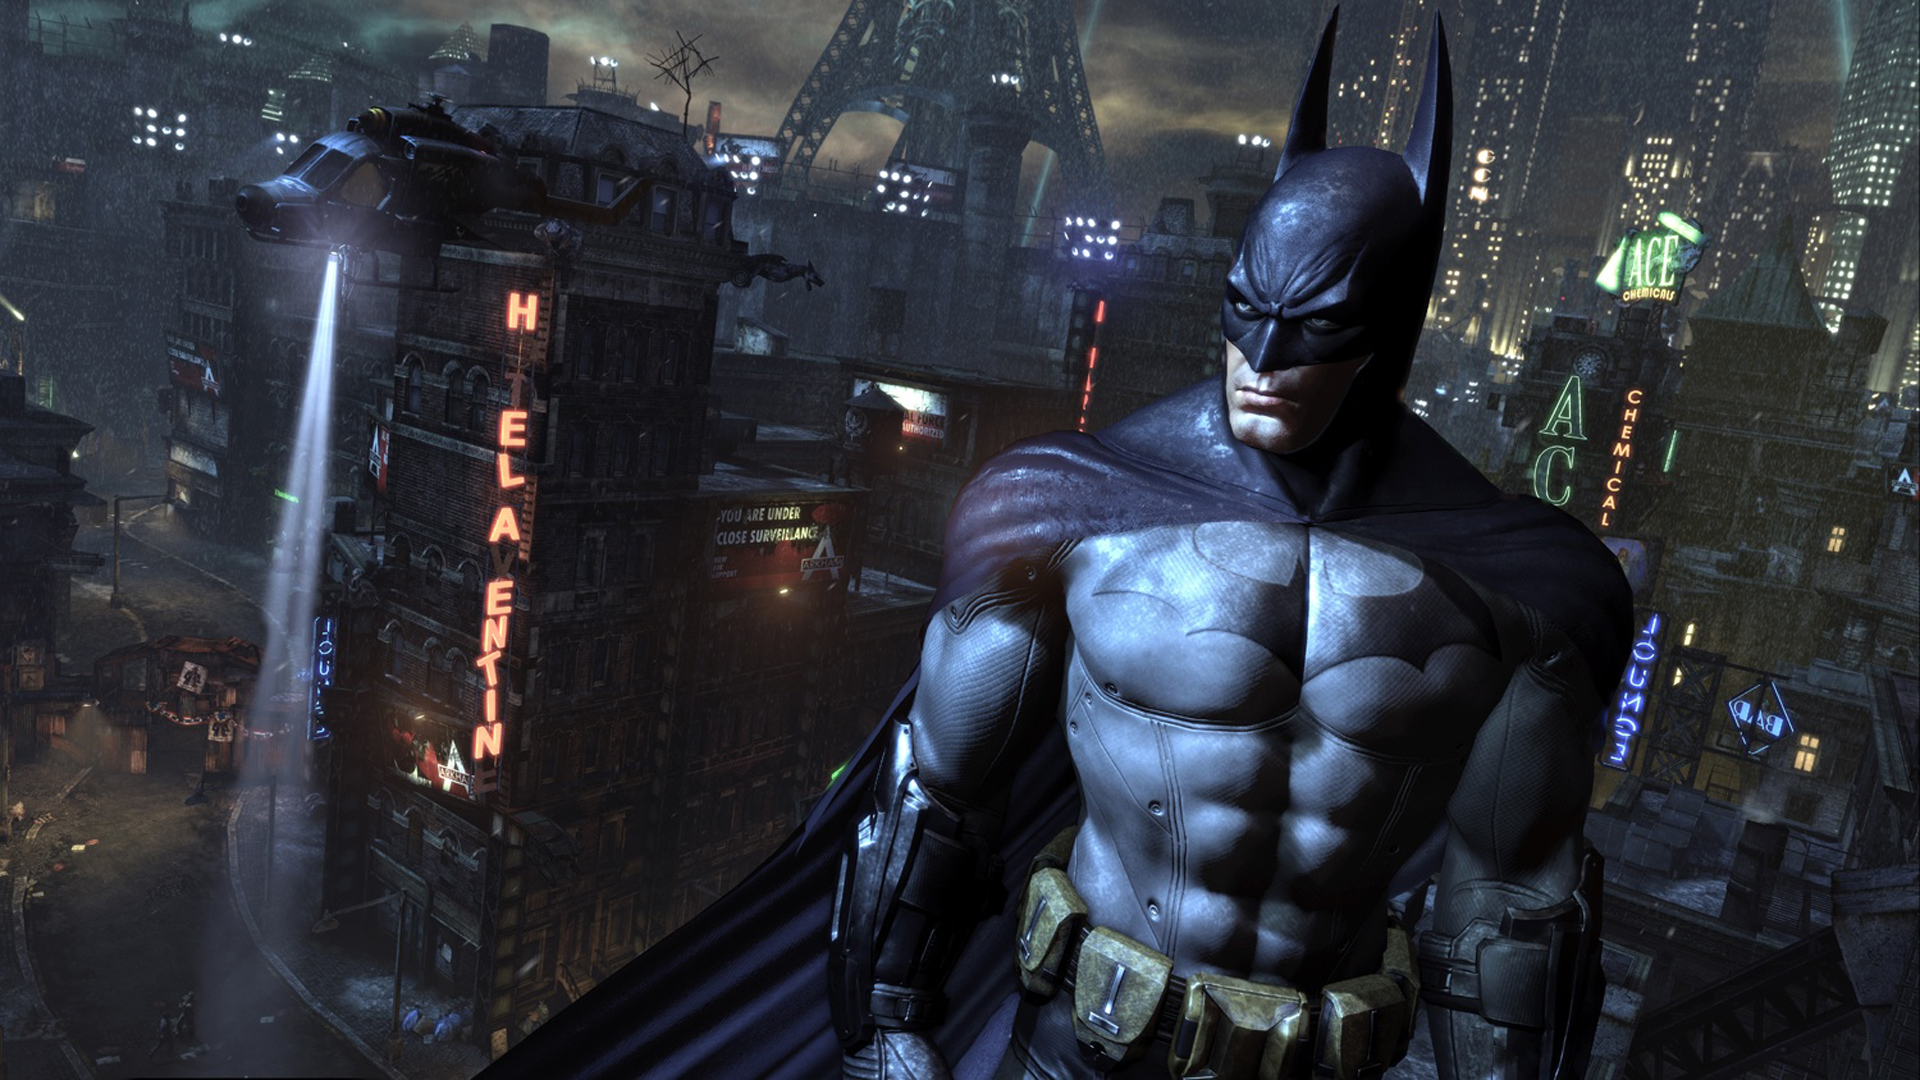 Batman Arkham City HD Wallpapers   HQ Wallpapers   HQ Wallpapers 1920x1080